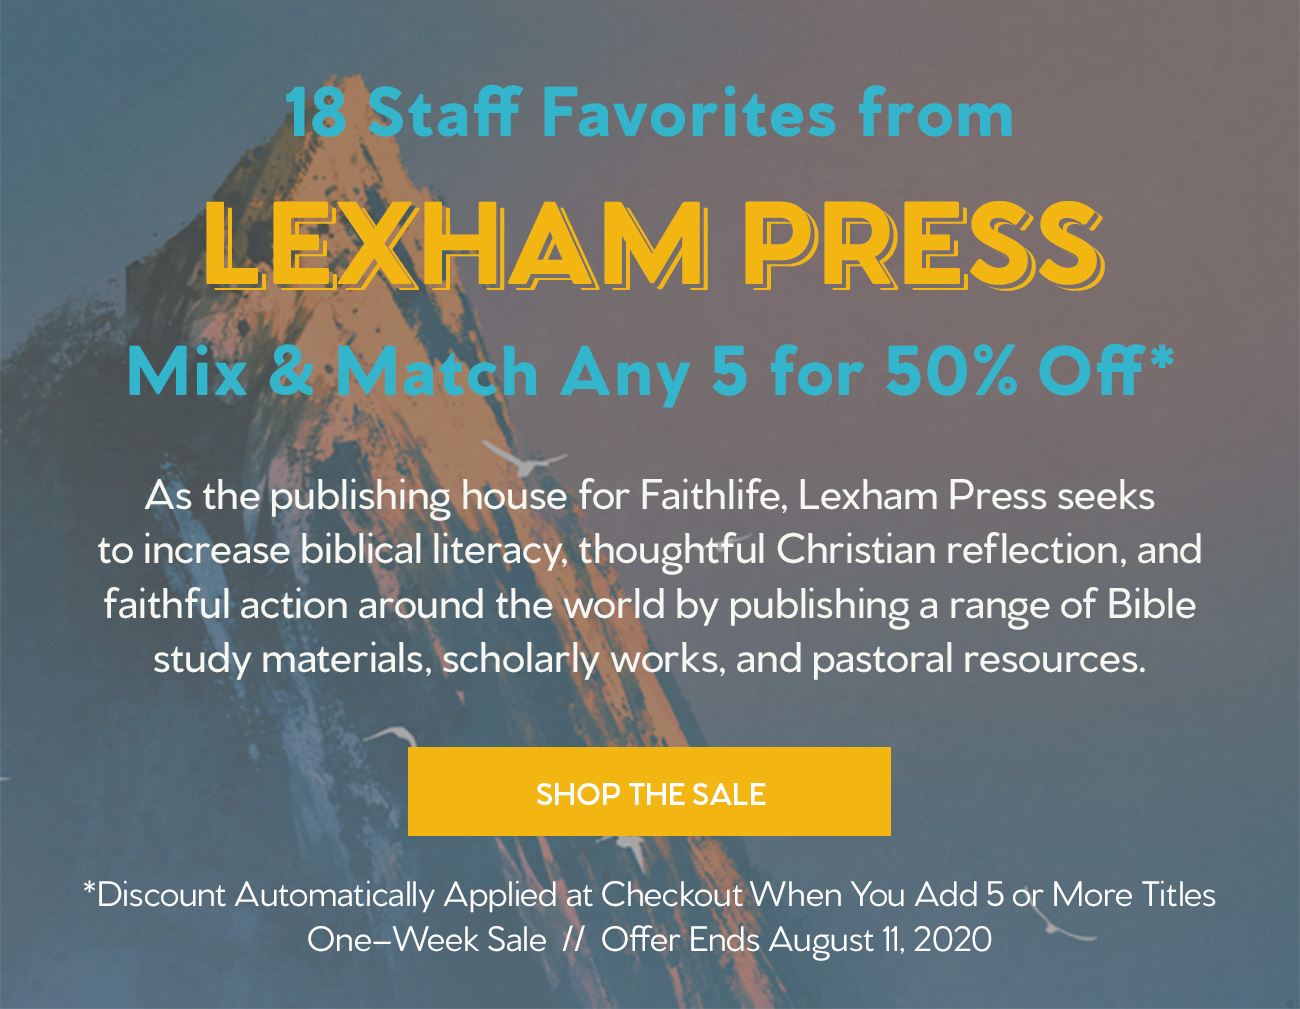 Lexham Press Staff Favorites